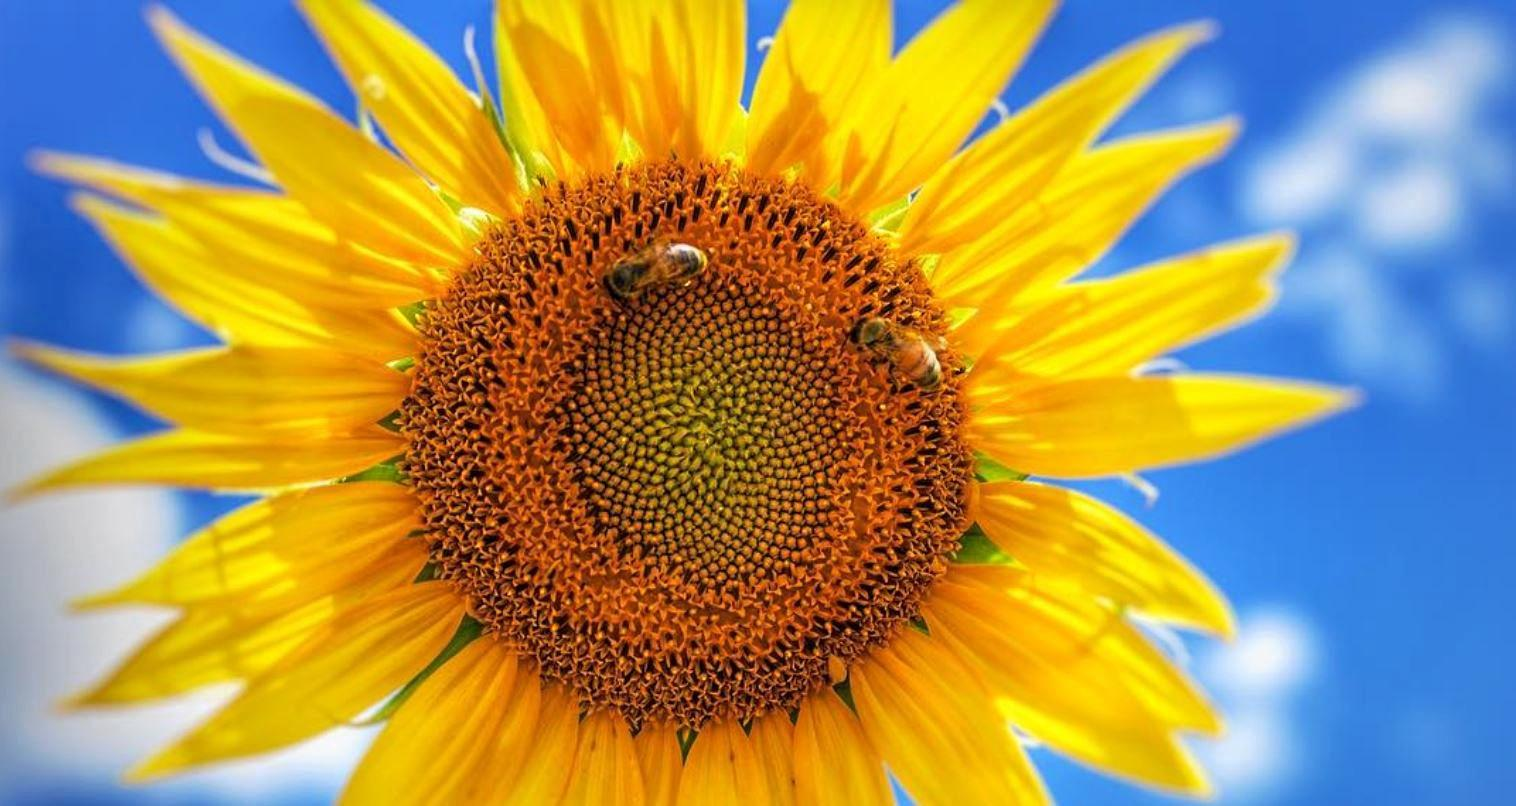 An emerging Warwick photographer Samaria captured this amazing photo of a bring sunflower near Allora.